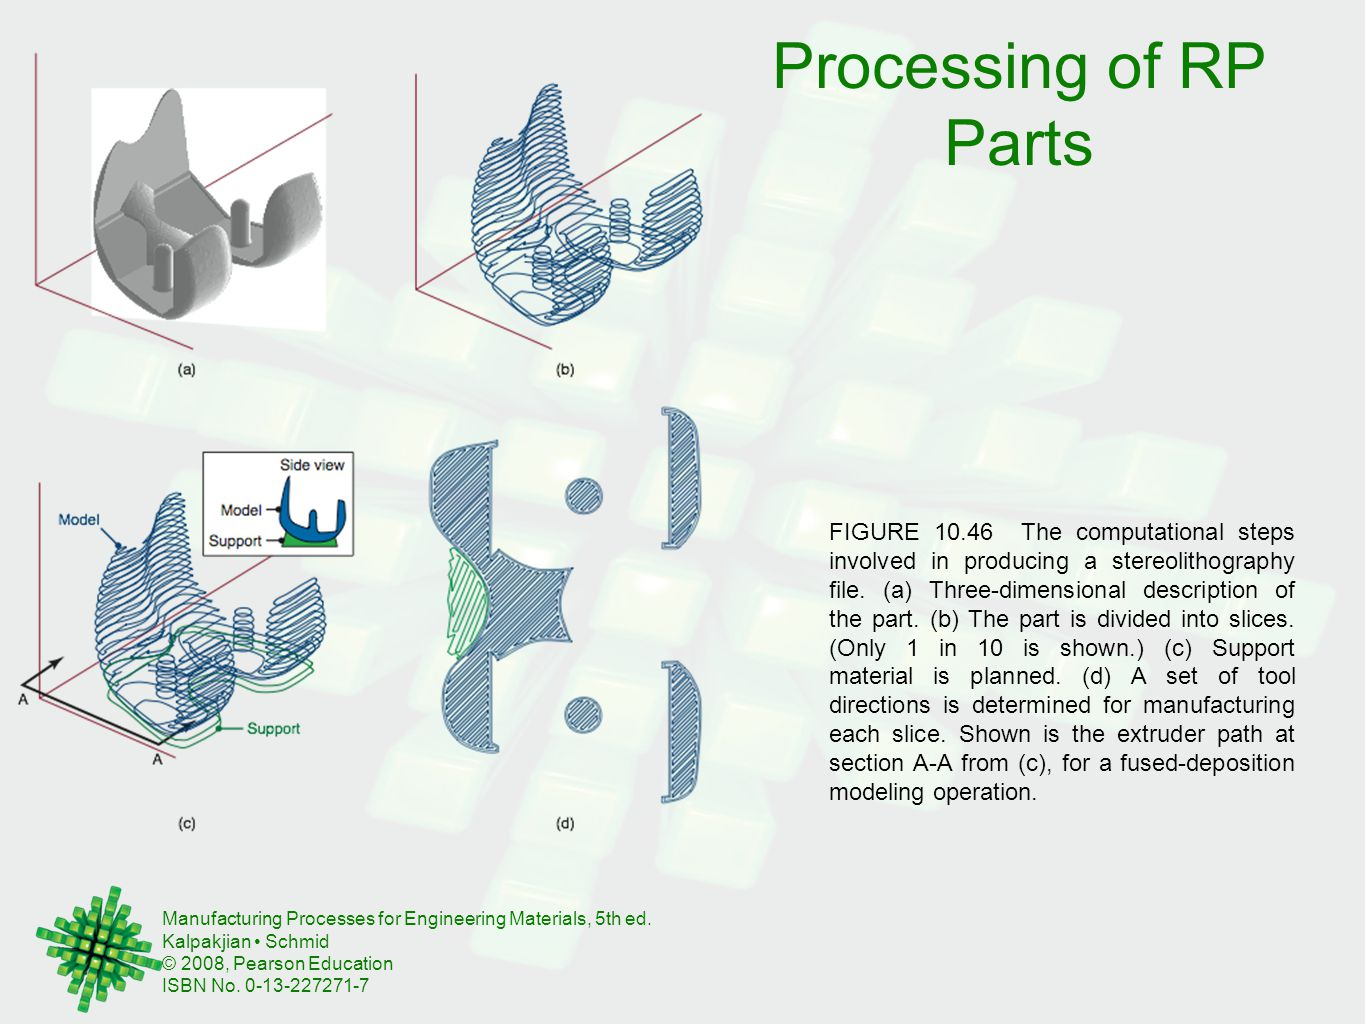 Processing of RP Parts